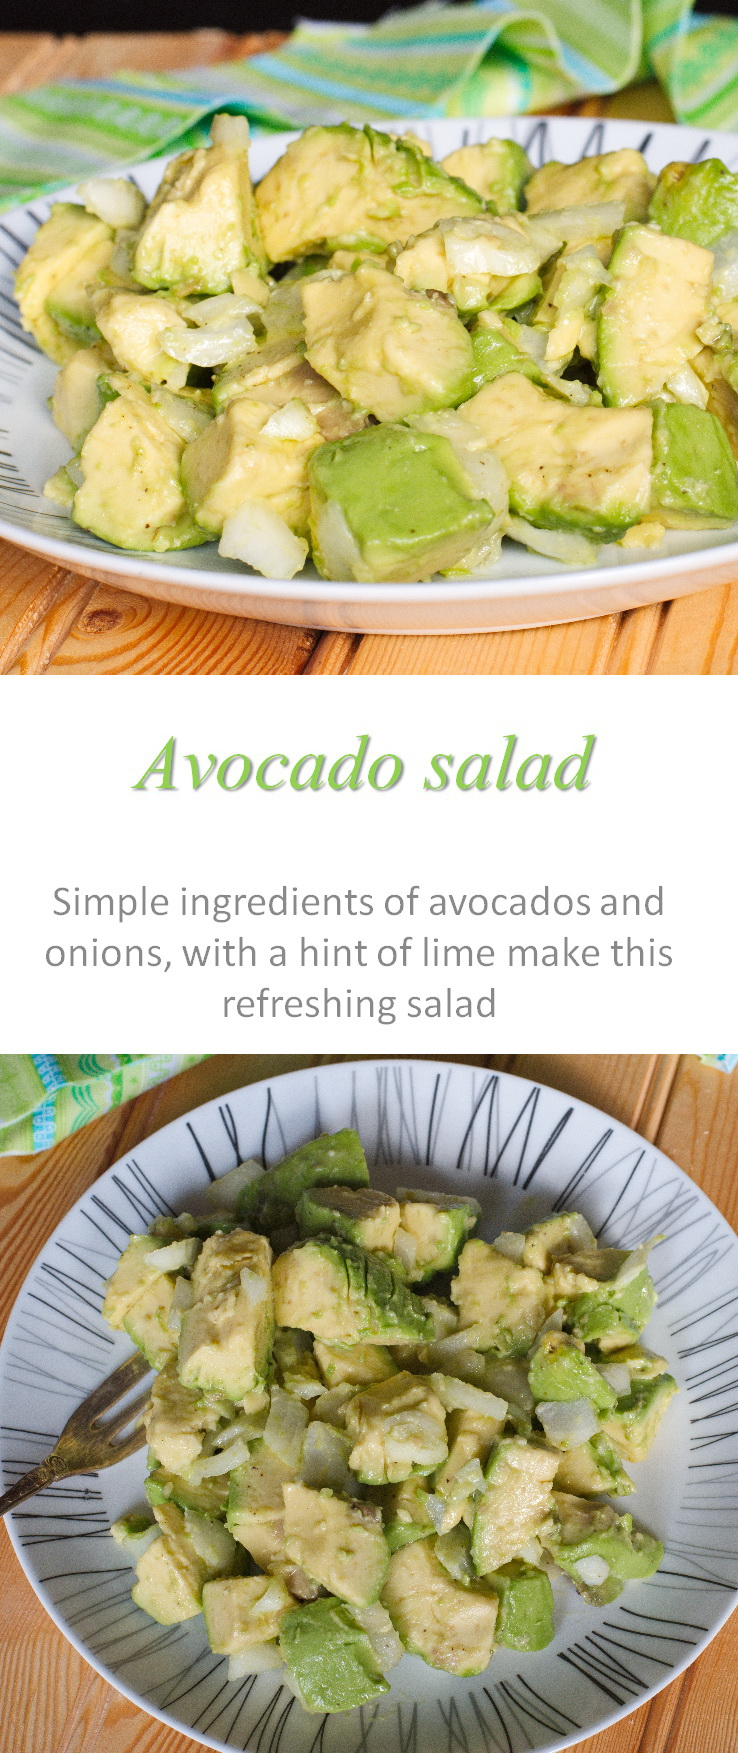 A simple, yet tasty, avocado salad with a slight zing. #avocado